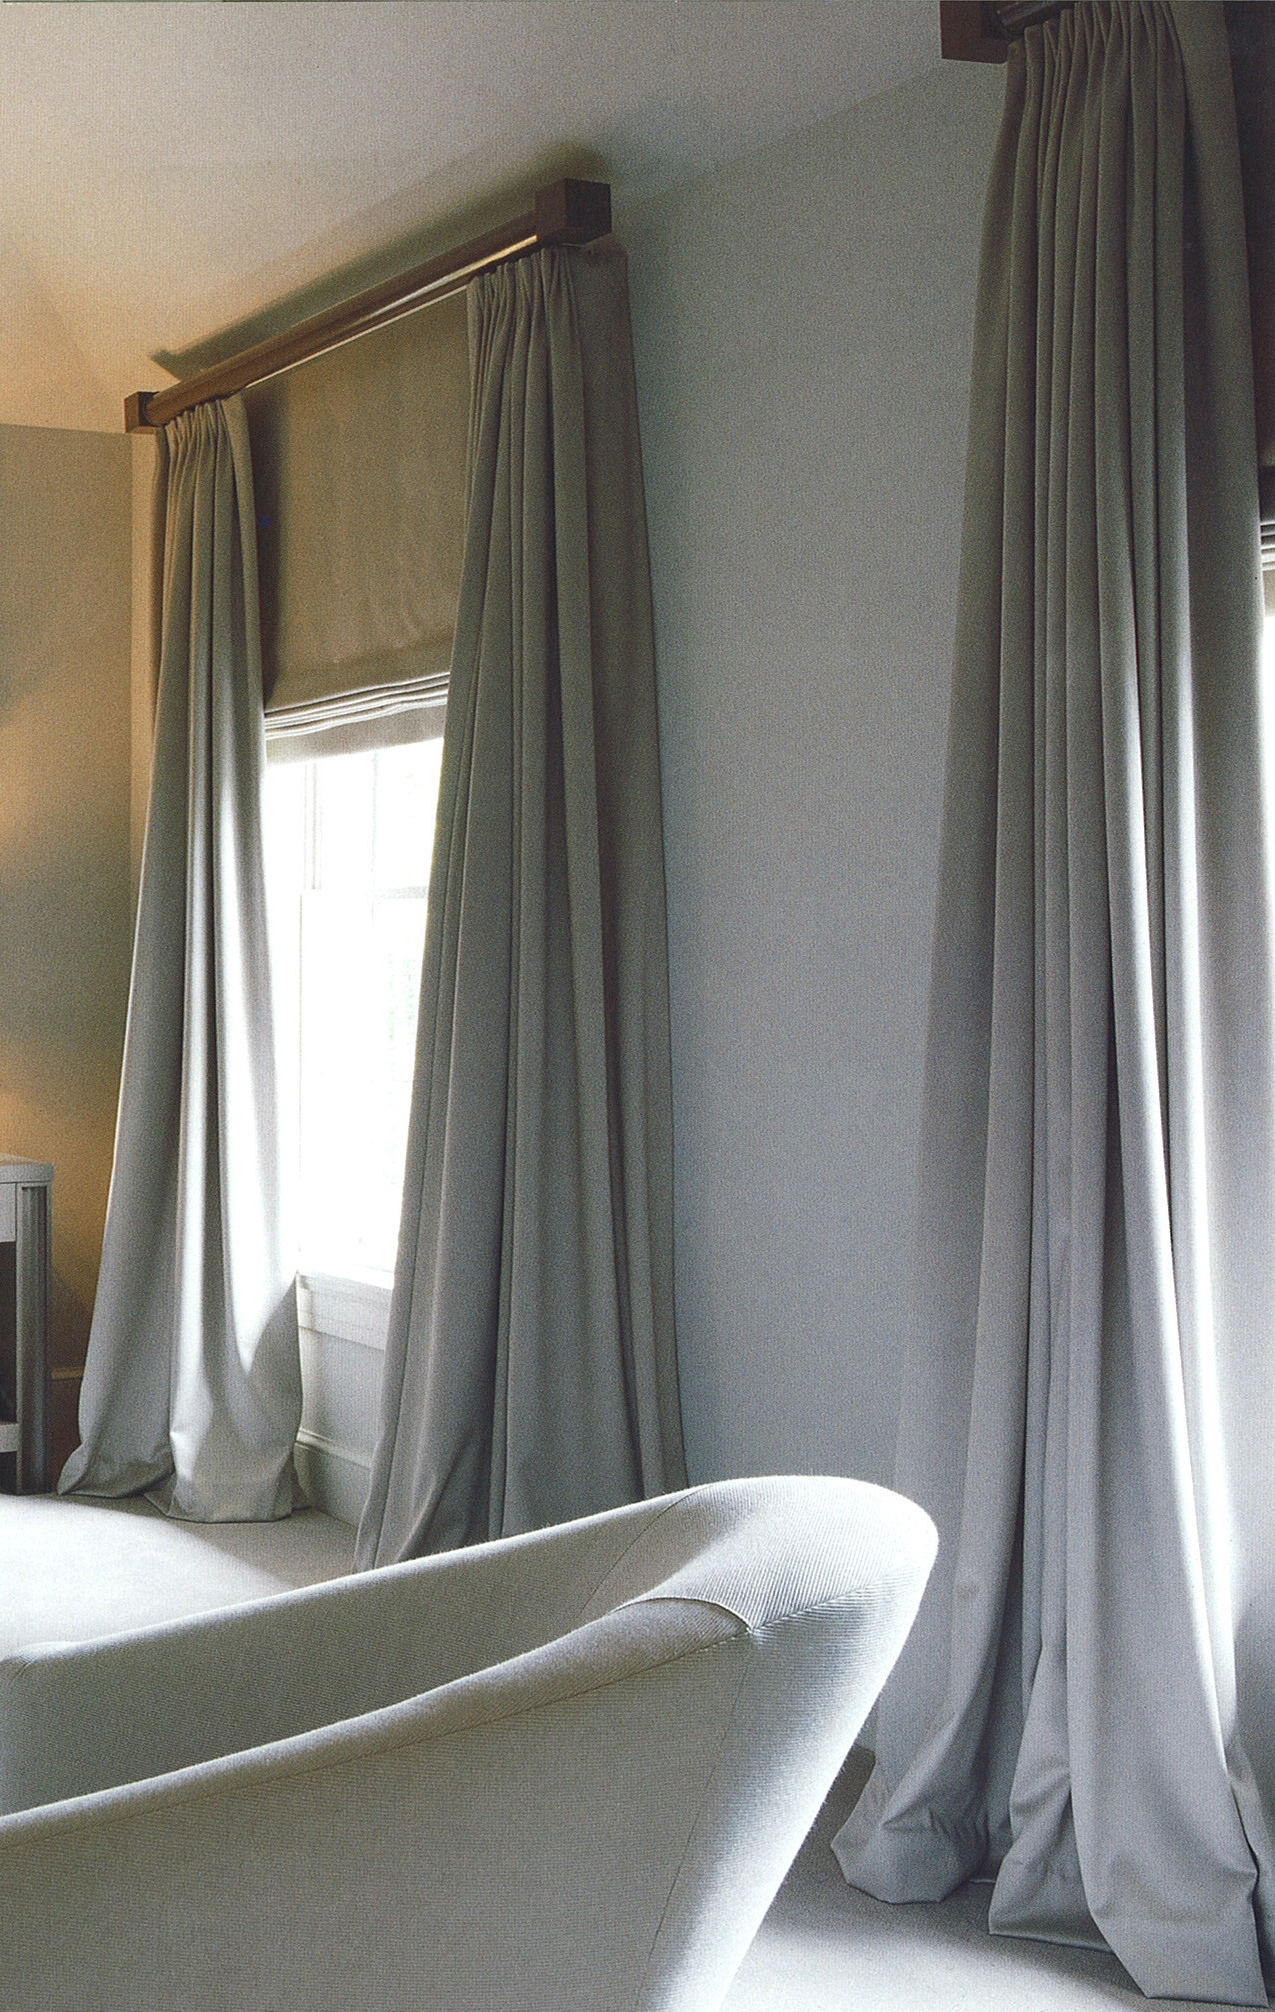 Luxury But Plain Curtains And Matching Blinds They Will Be A Big In Curtains With Matching Roman Blinds (Image 7 of 15)